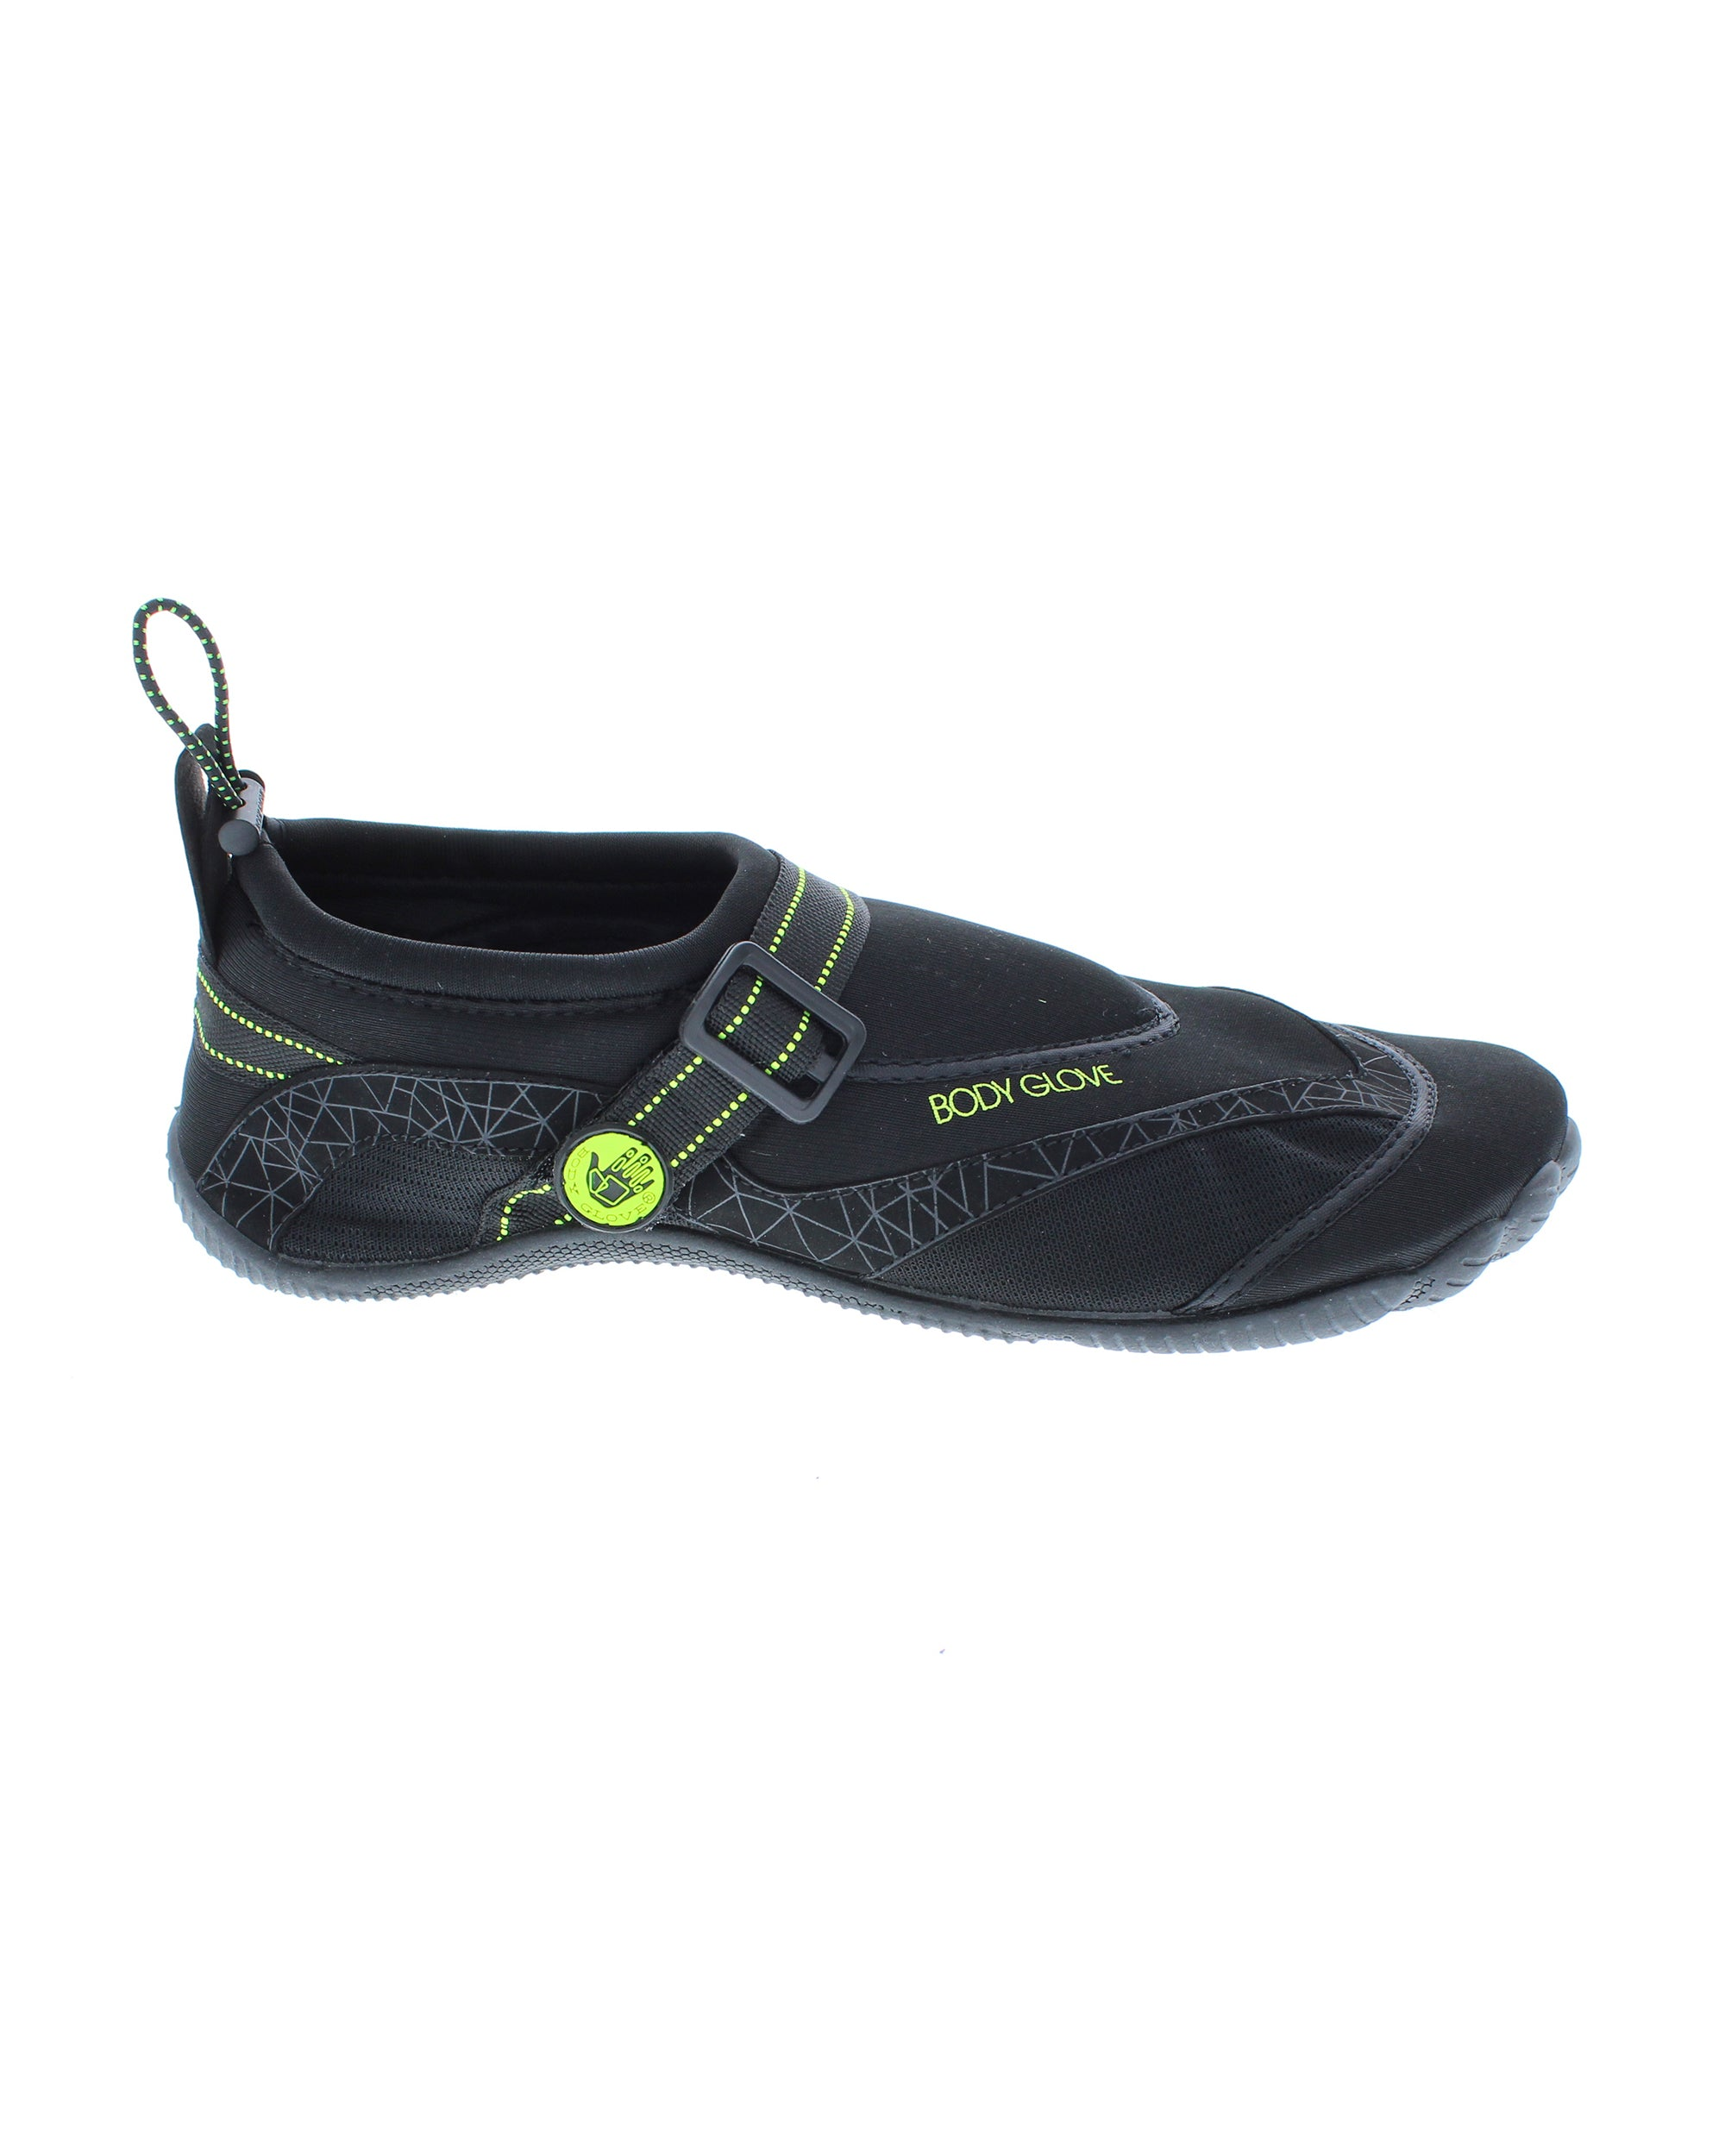 Men's Realm Water Shoes - Black/Neon Yellow